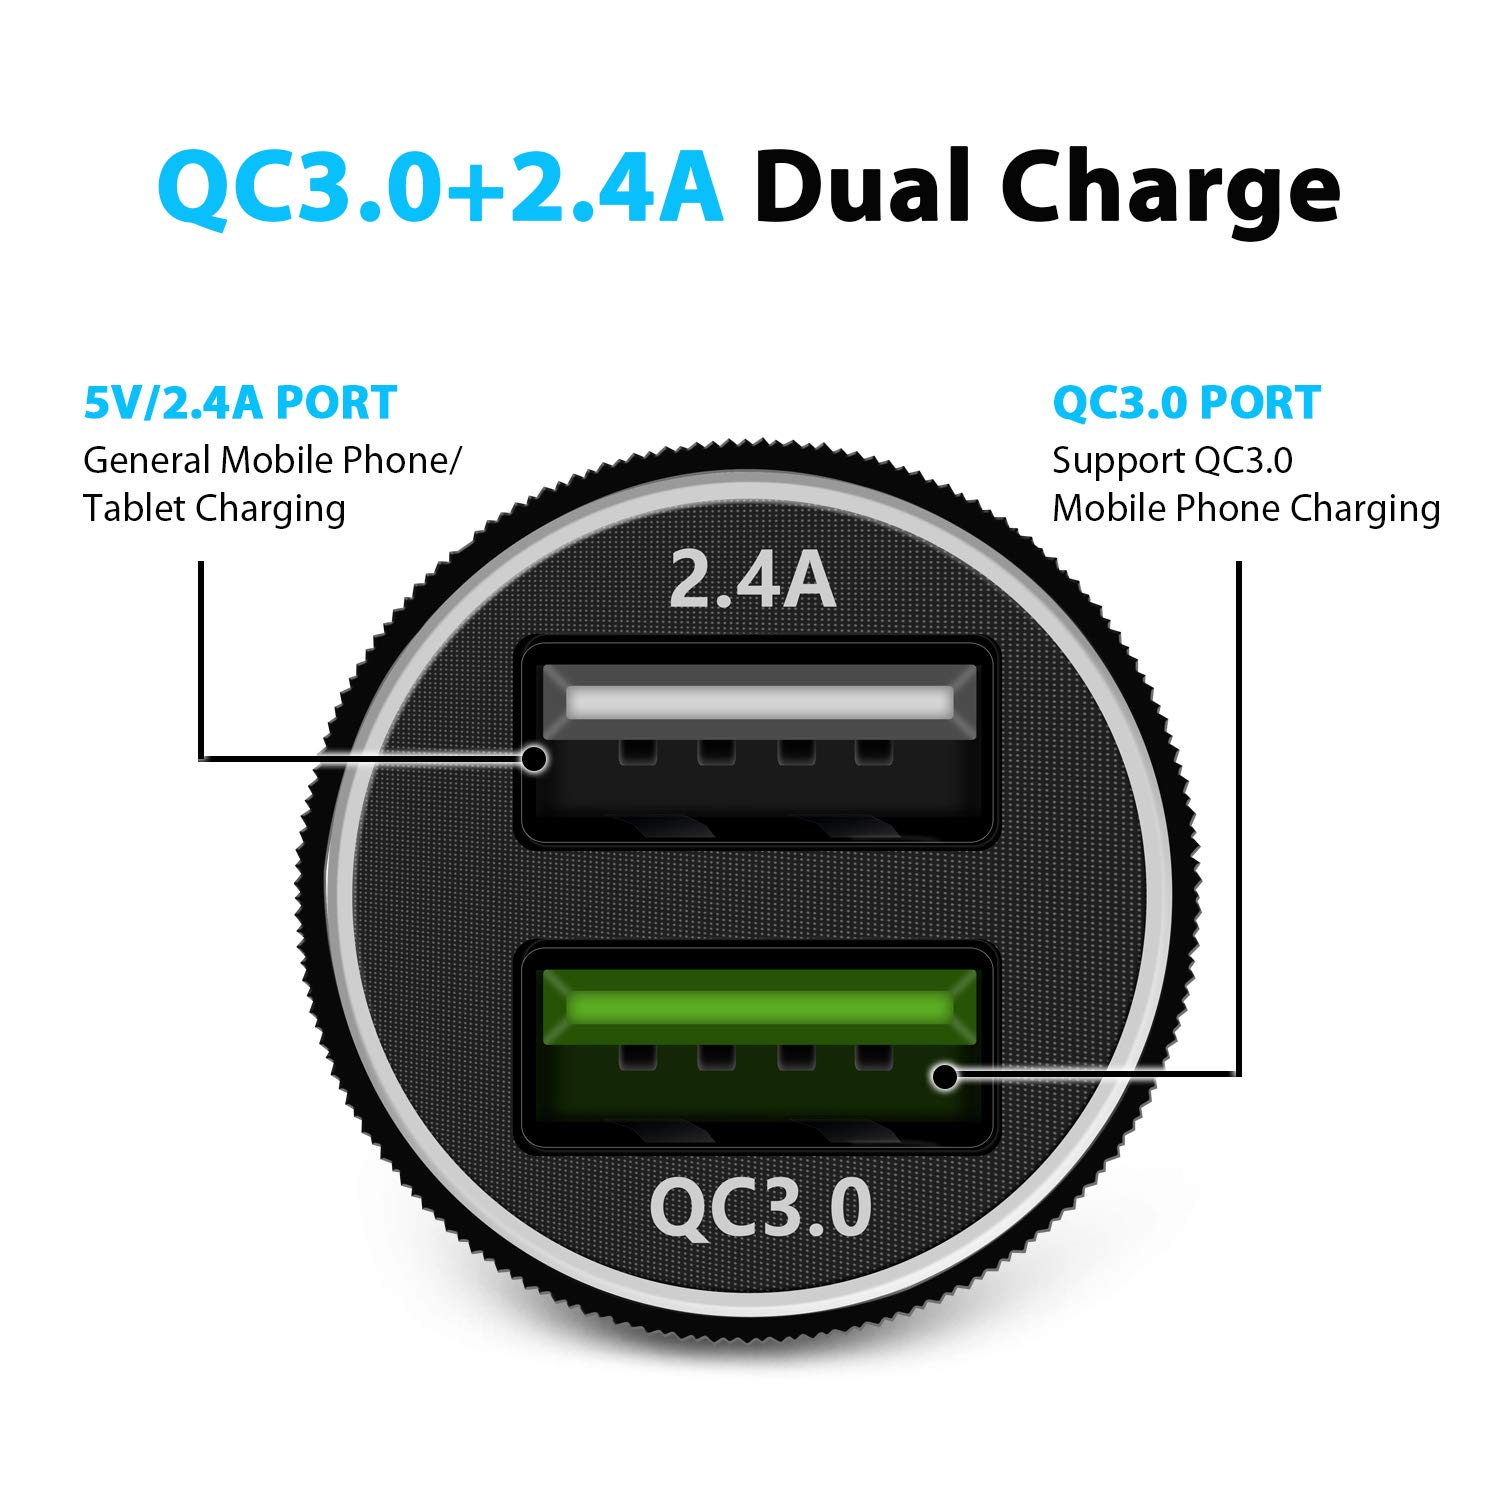 Note9//8 MIPOM Quick Charge 3.0 /& 5V//2.4A Smart Dual USB Ports 30W Fast Car Adapter Compatible Samsung Galaxy S9//S9 Plus//S8//S8 Plus Car Charger iPhone Xs//Xs Max//XR//X//8//8 Plus//7//7 Plus//6s//6 iPad Pro